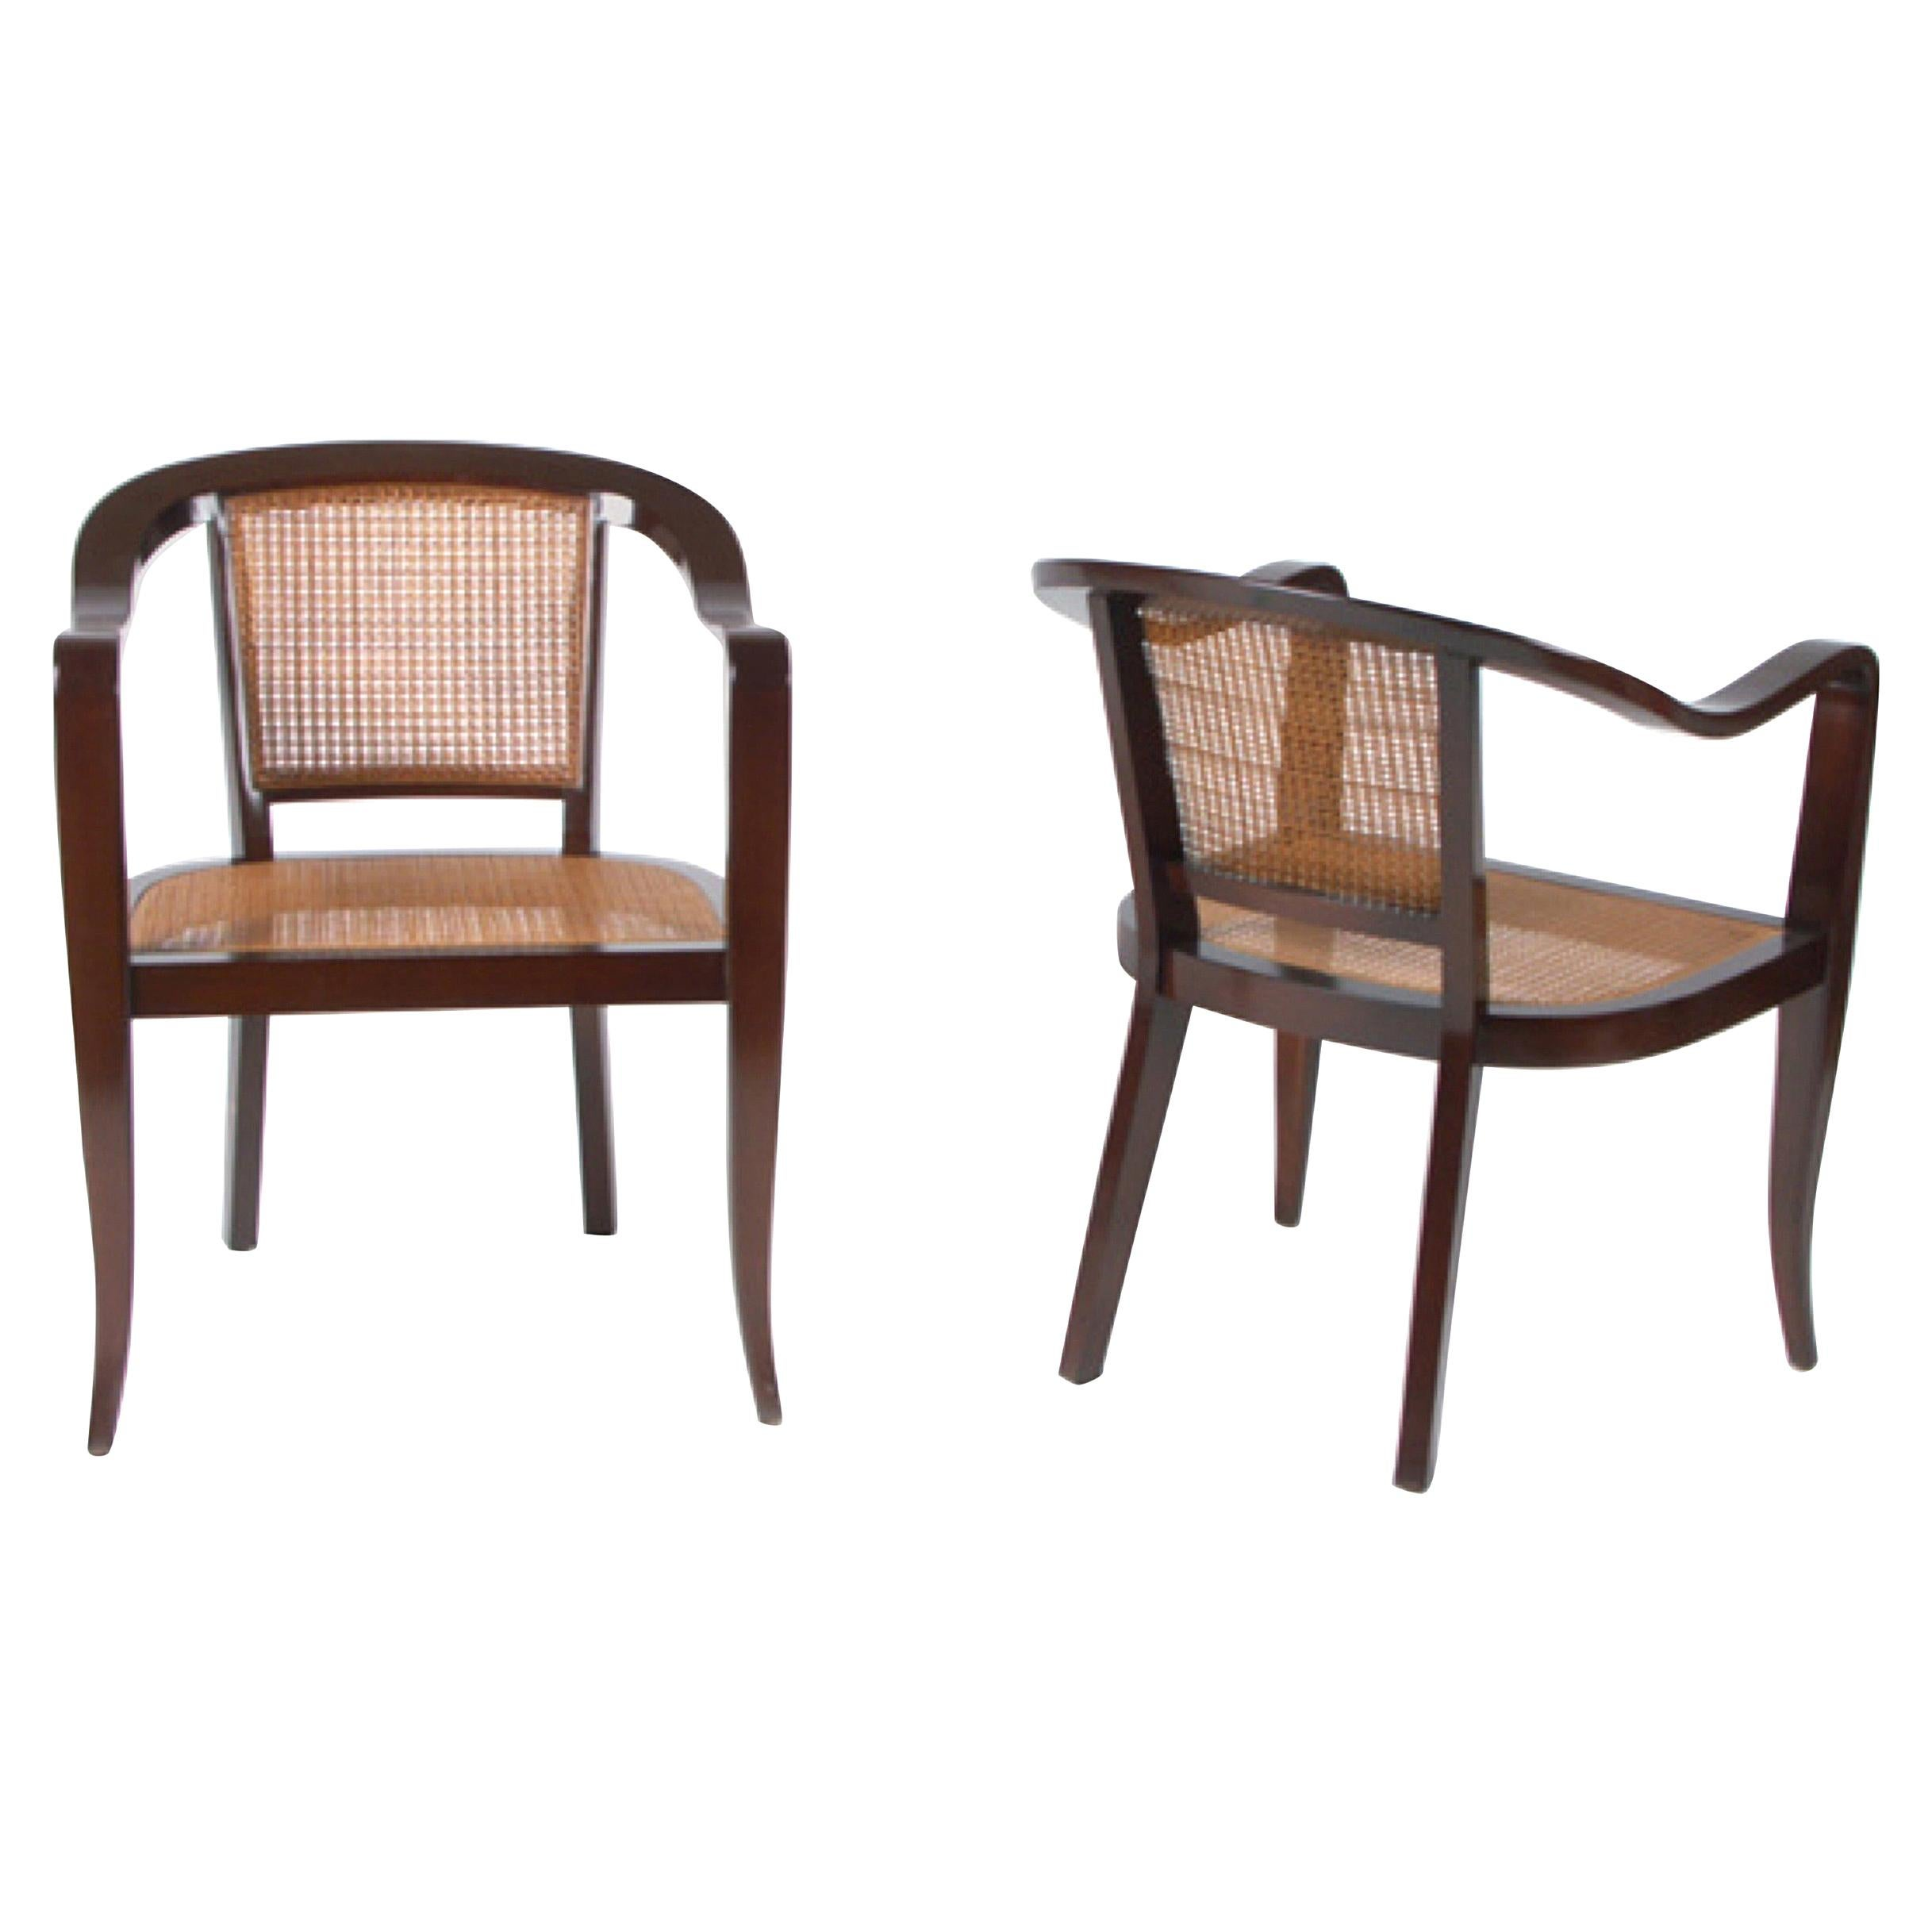 Pair of Cane and Walnut Edward Wormley Style Chairs c. 1950s